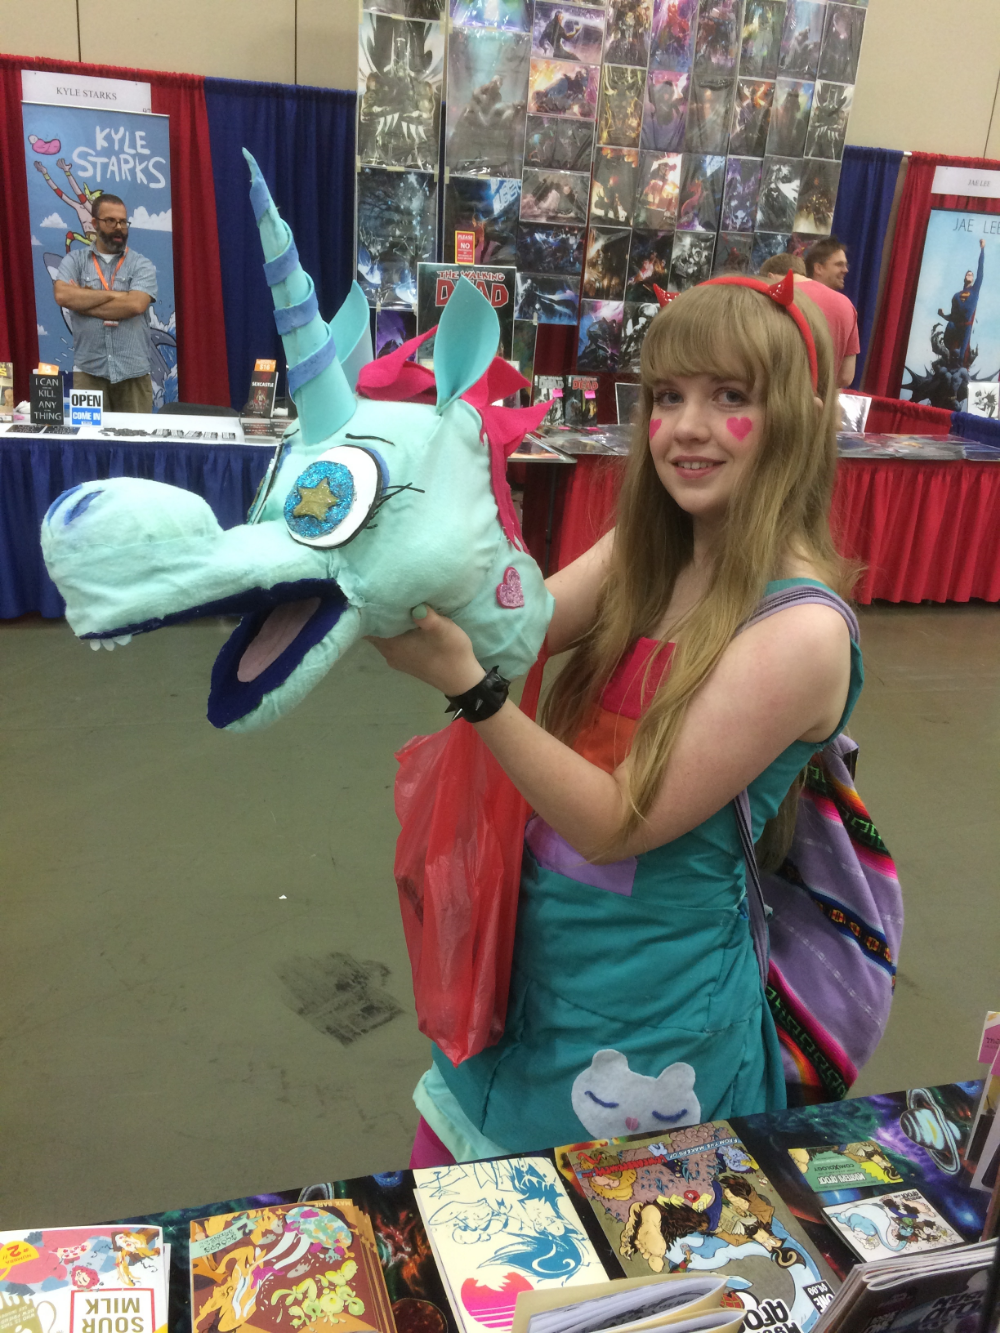 This kid wowed us her puppet she made of pony head from Star vs the Forces of Evil. Awesome sauce!